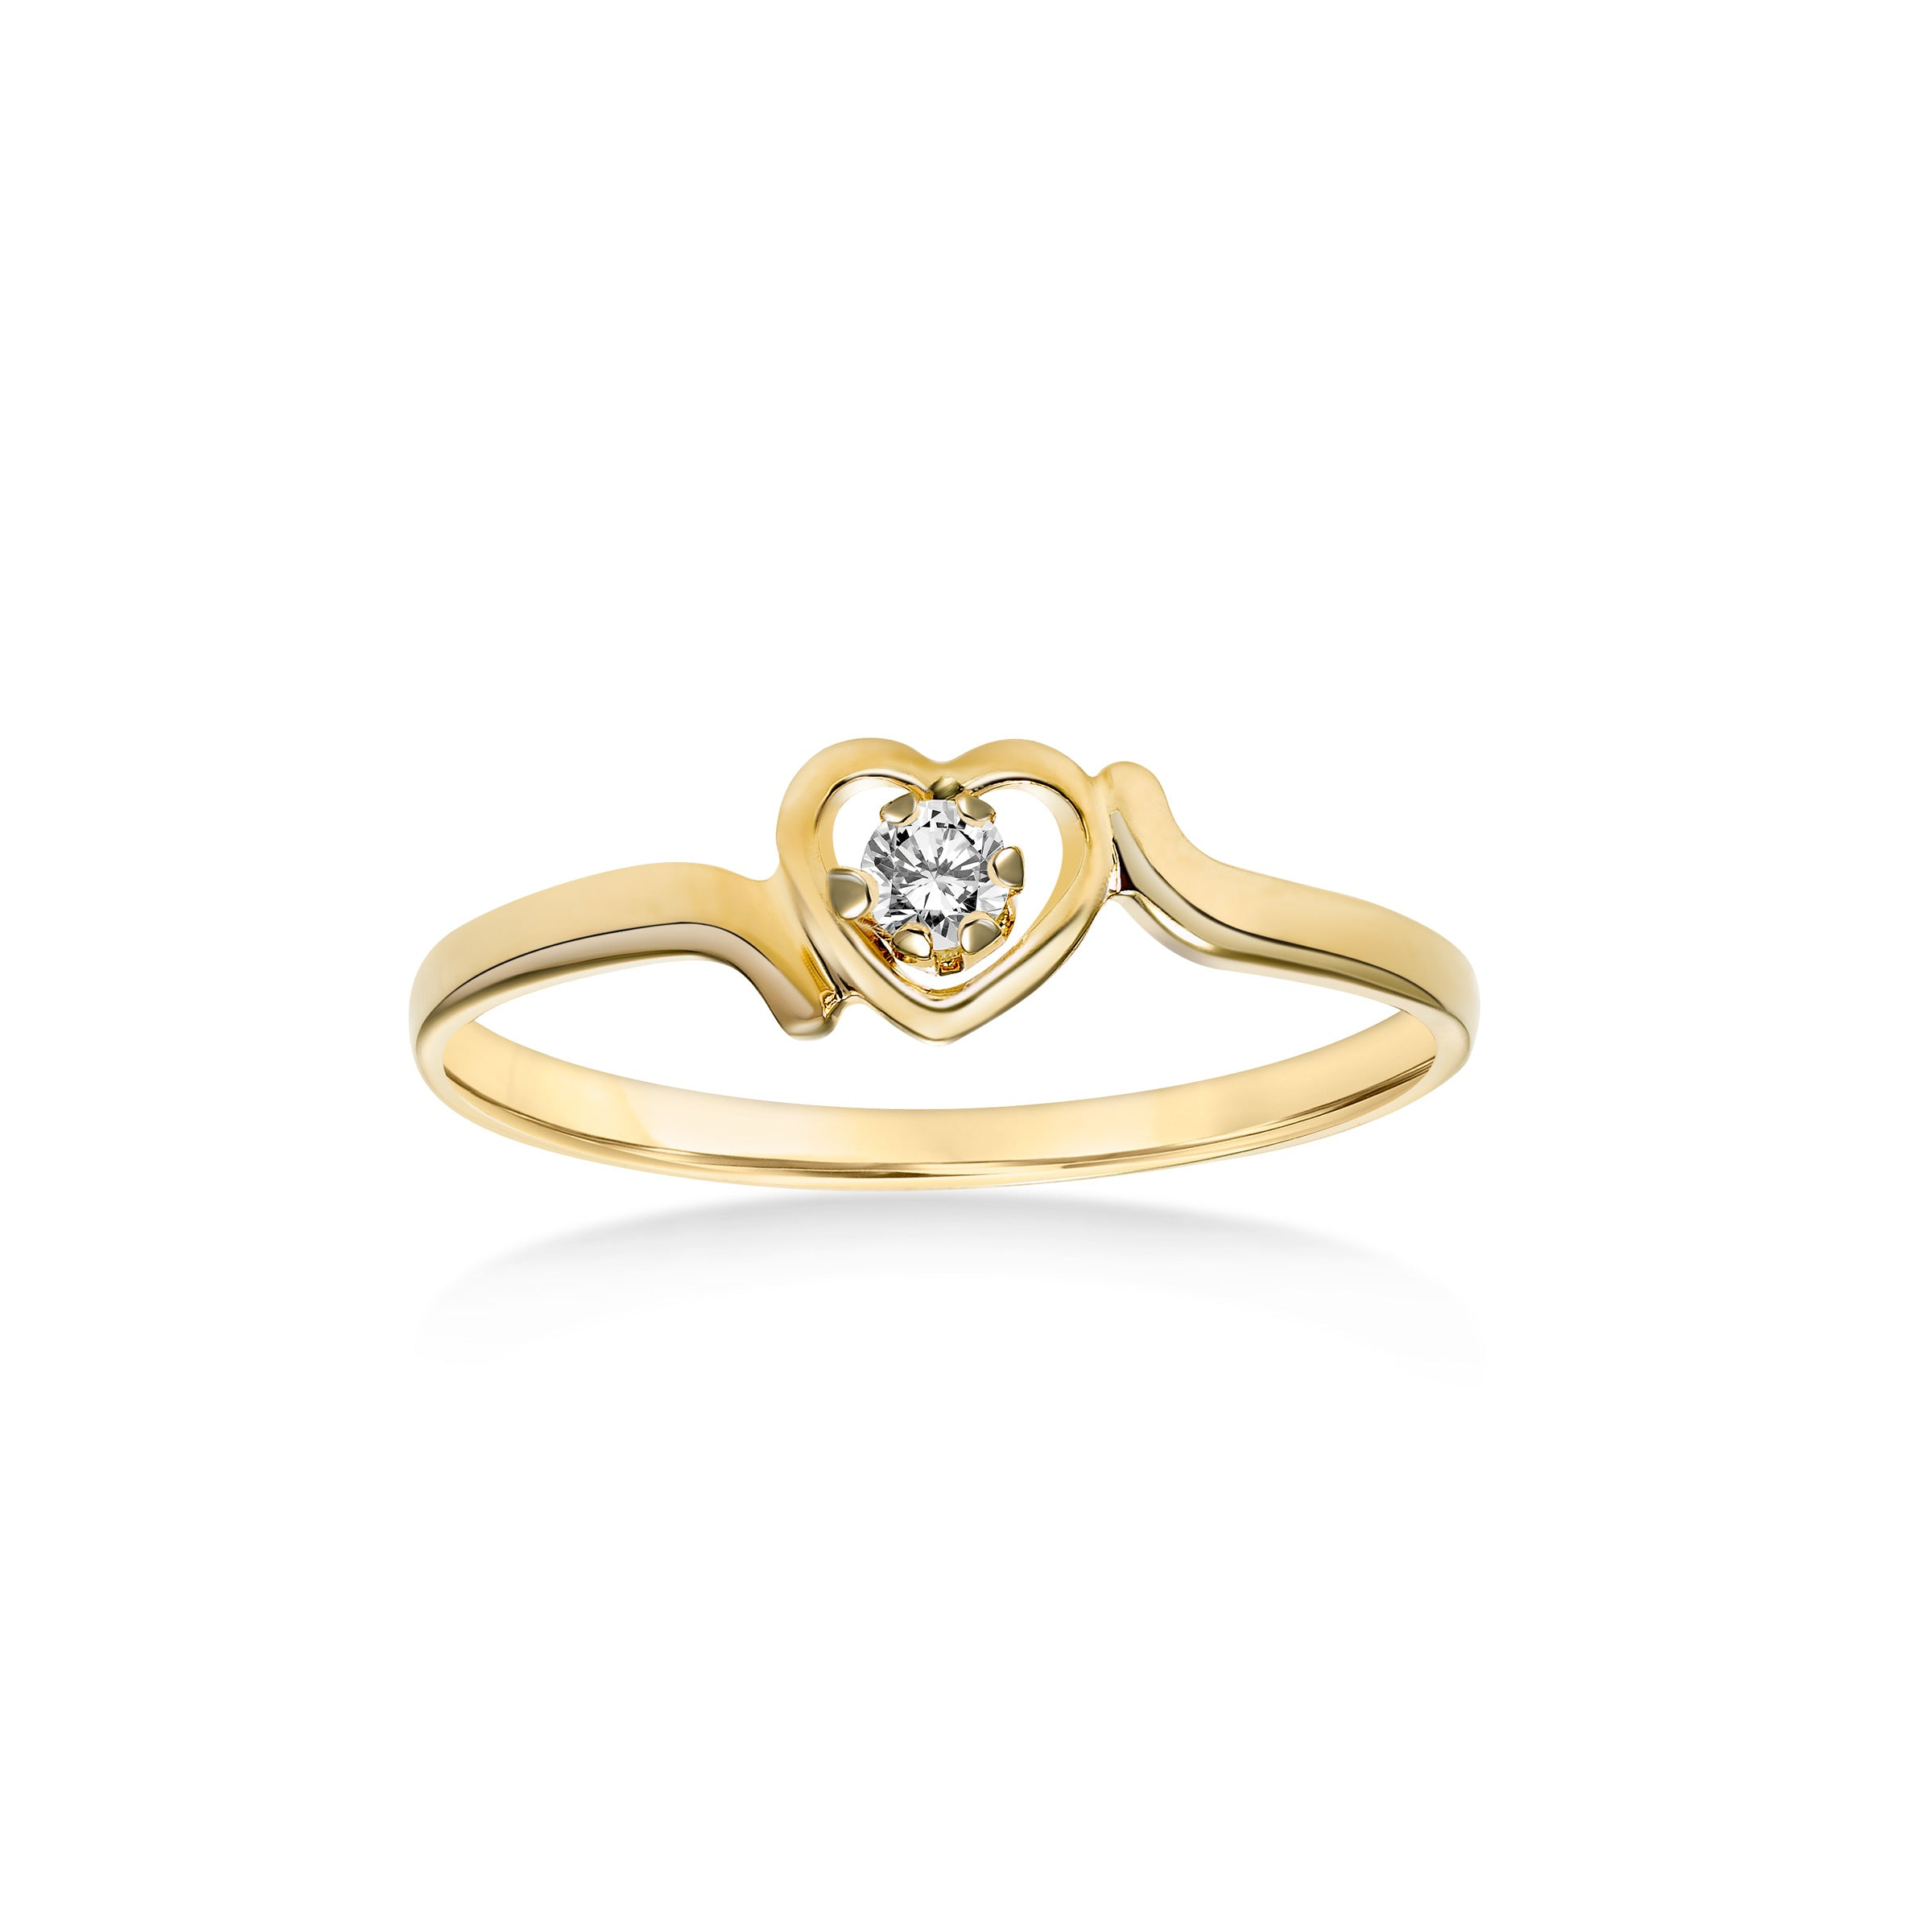 Heart Design Ring with Diamond Center, 14K Yellow Gold